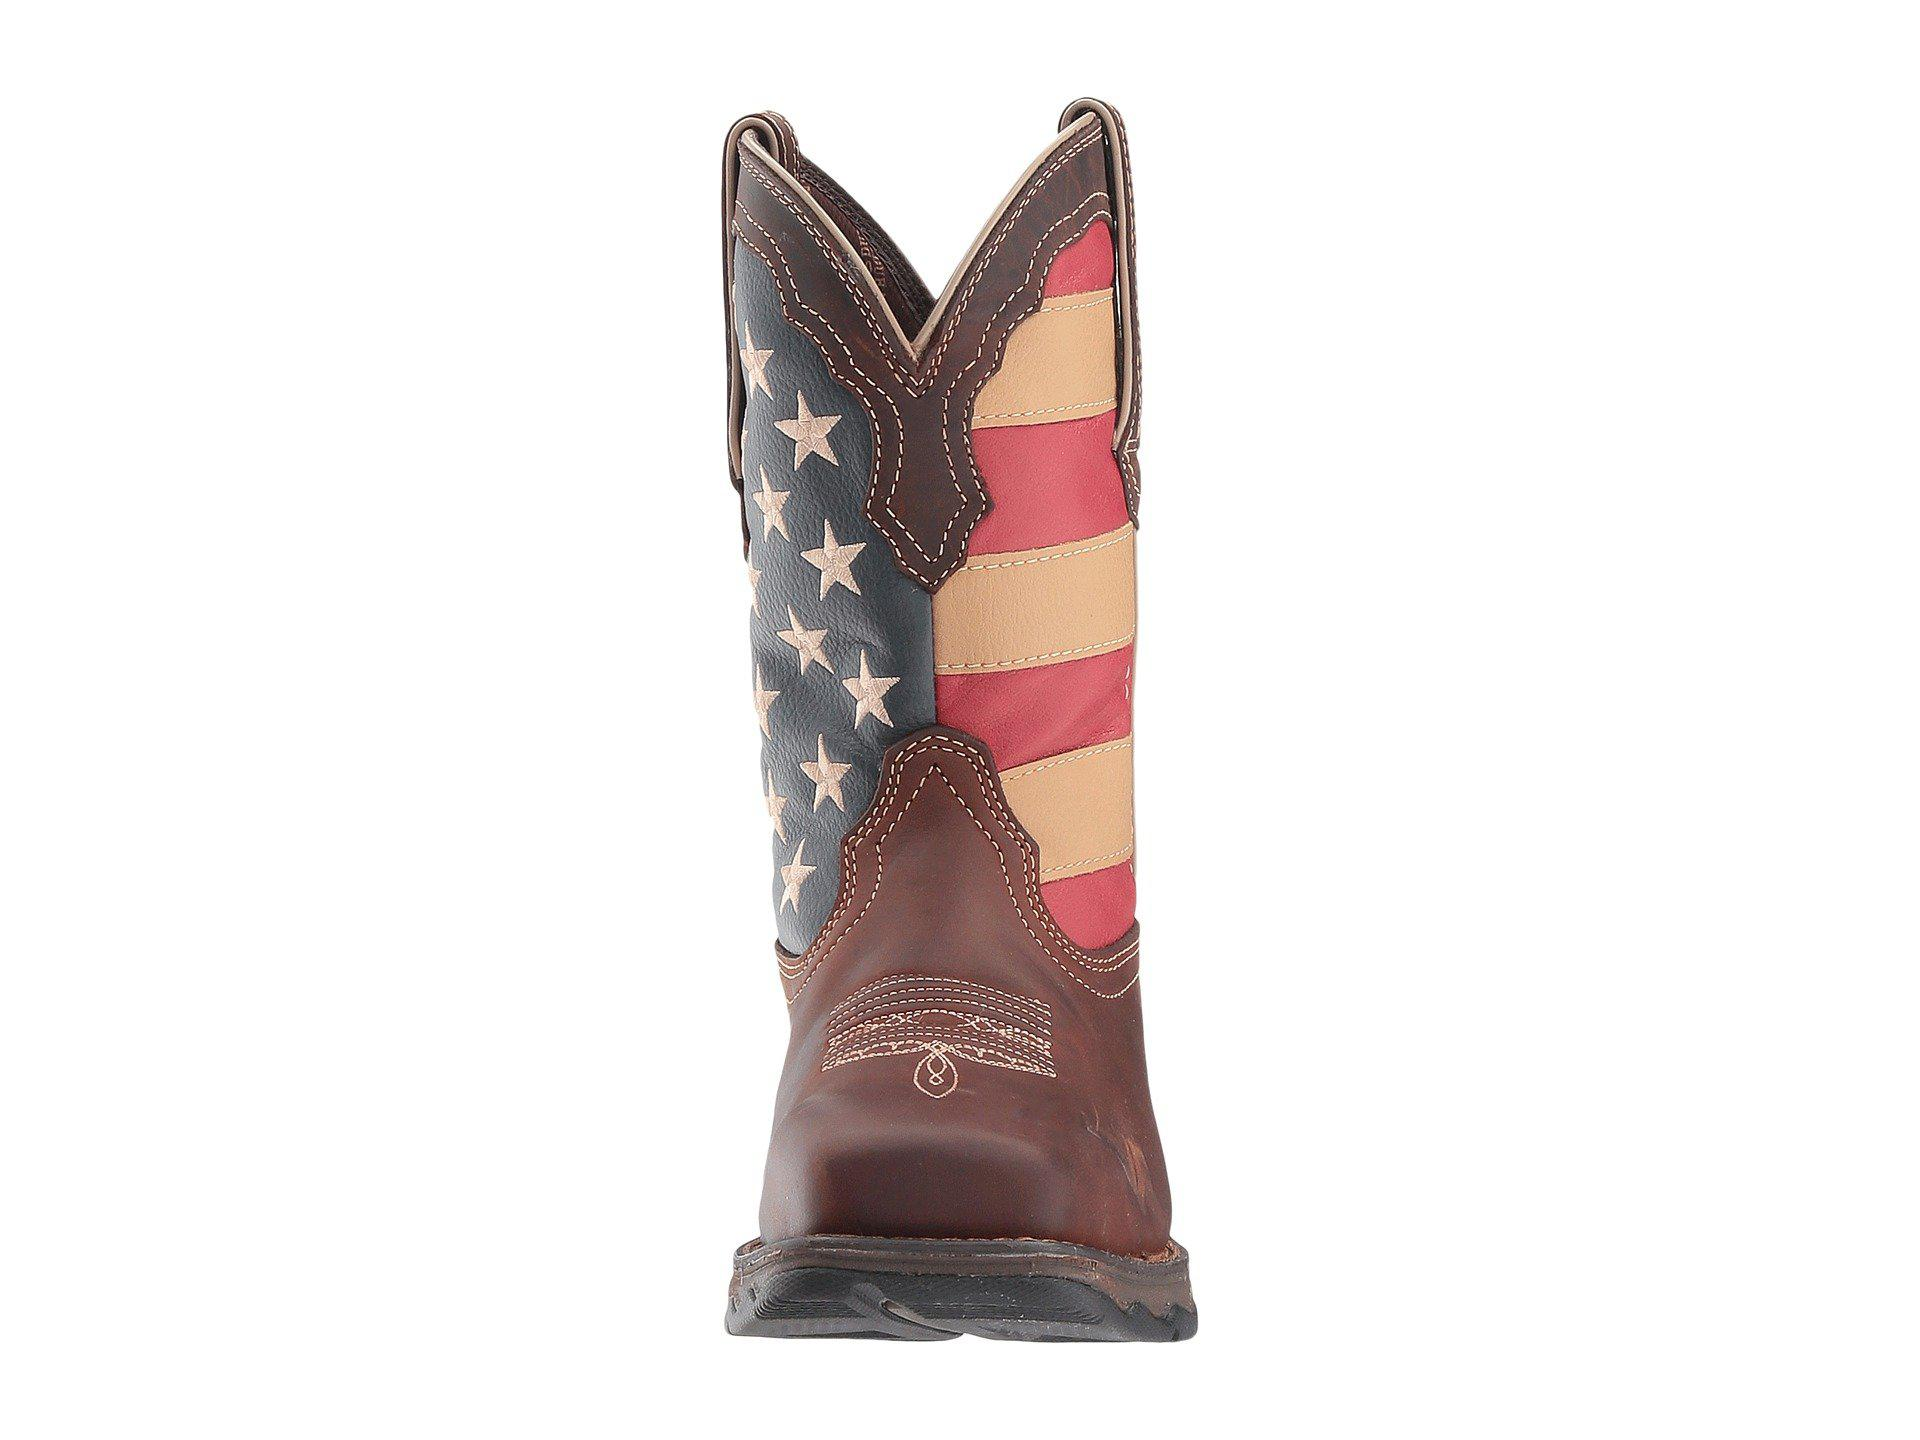 468a5fdecb4 Lyst - Durango Lady Rebel Flag Steel Toe (brown) Cowboy Boots in ...